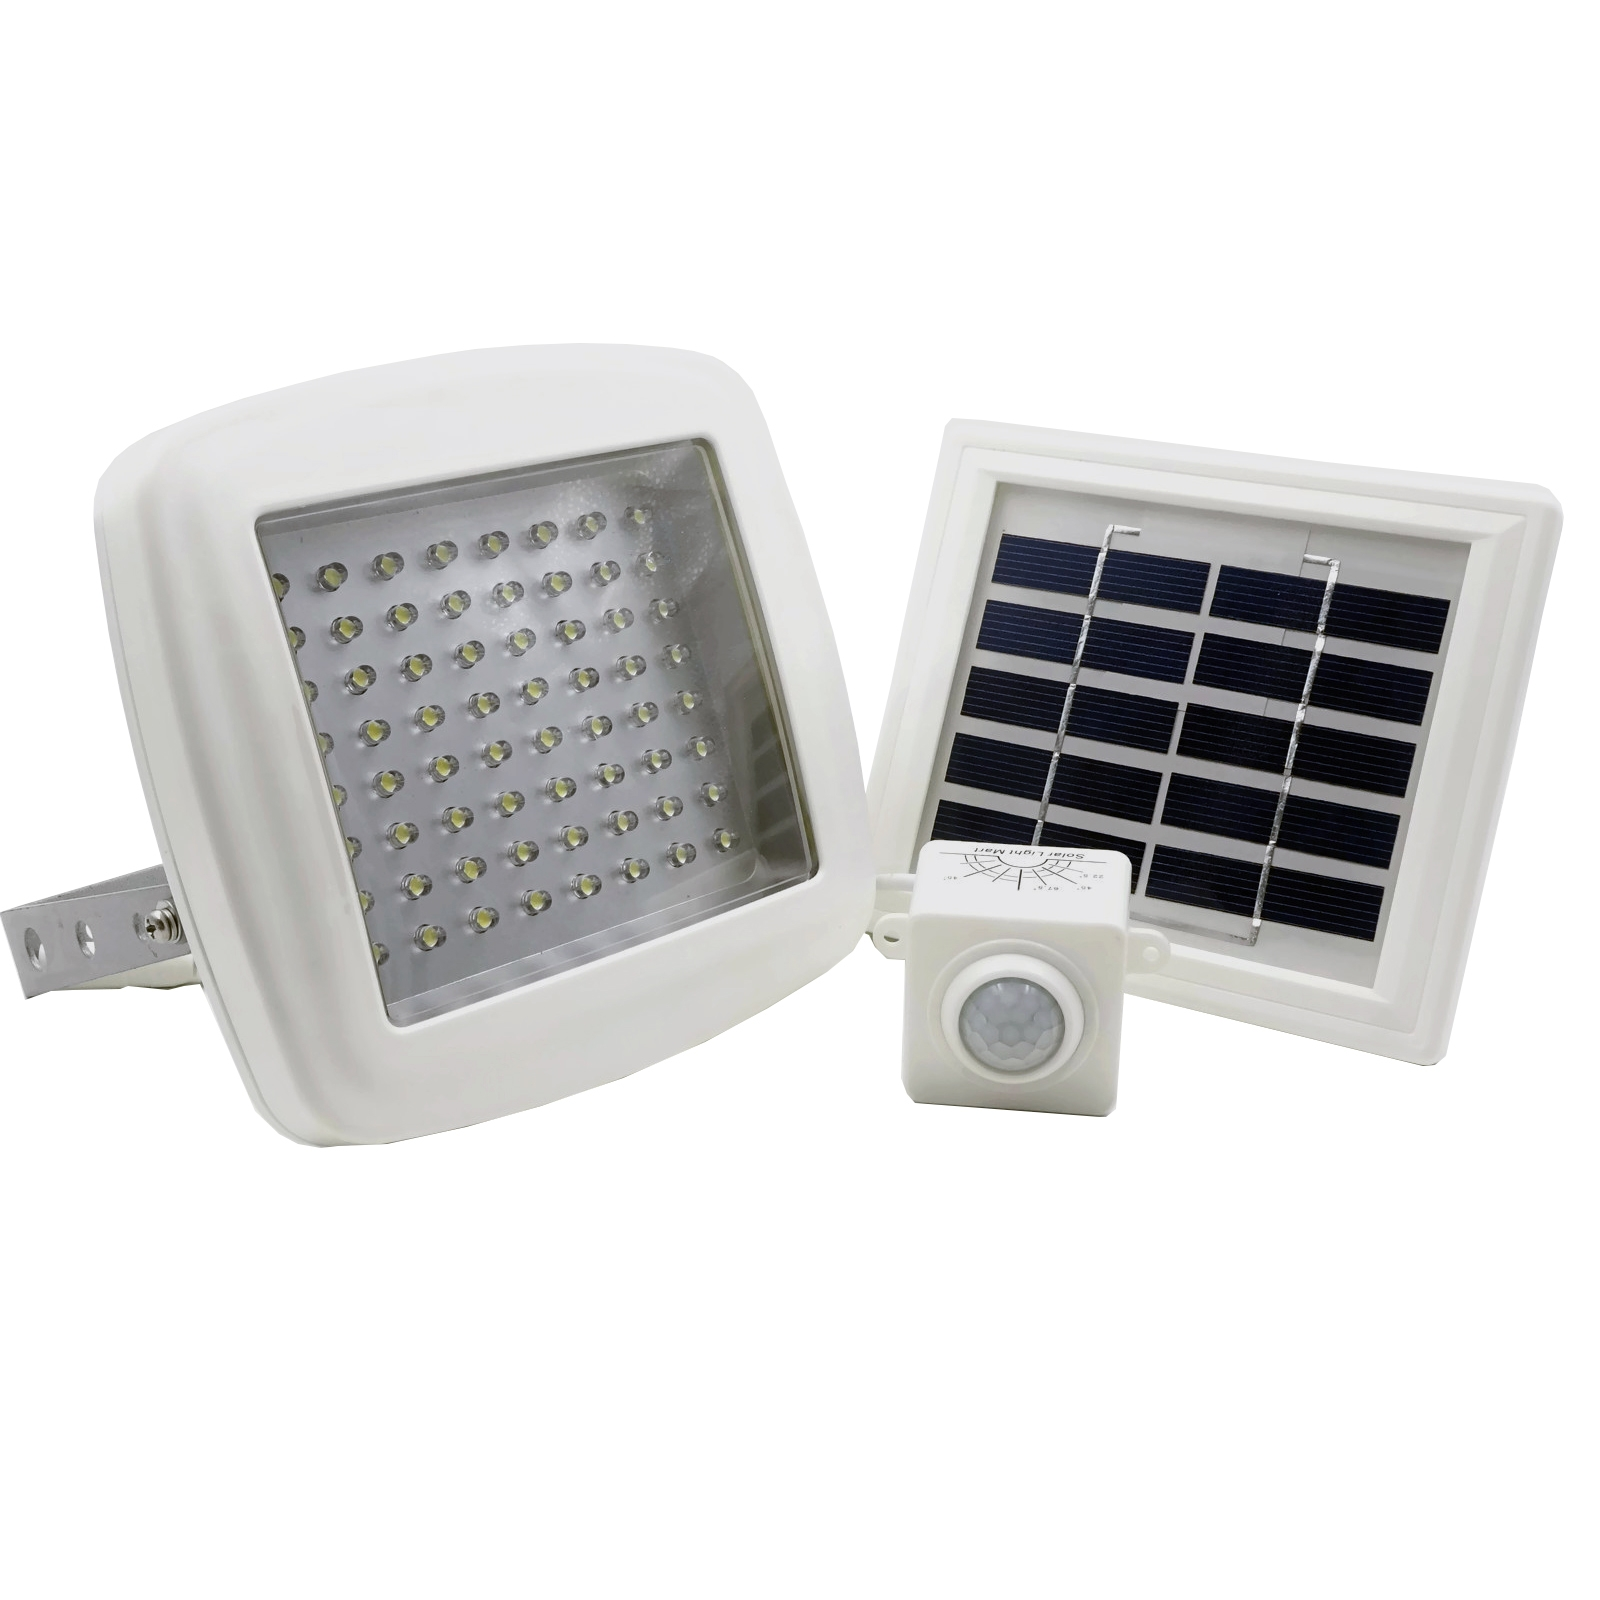 spotlights motion is security upgraded outdoor loading image itm lighting double sensor led vandeng light solar